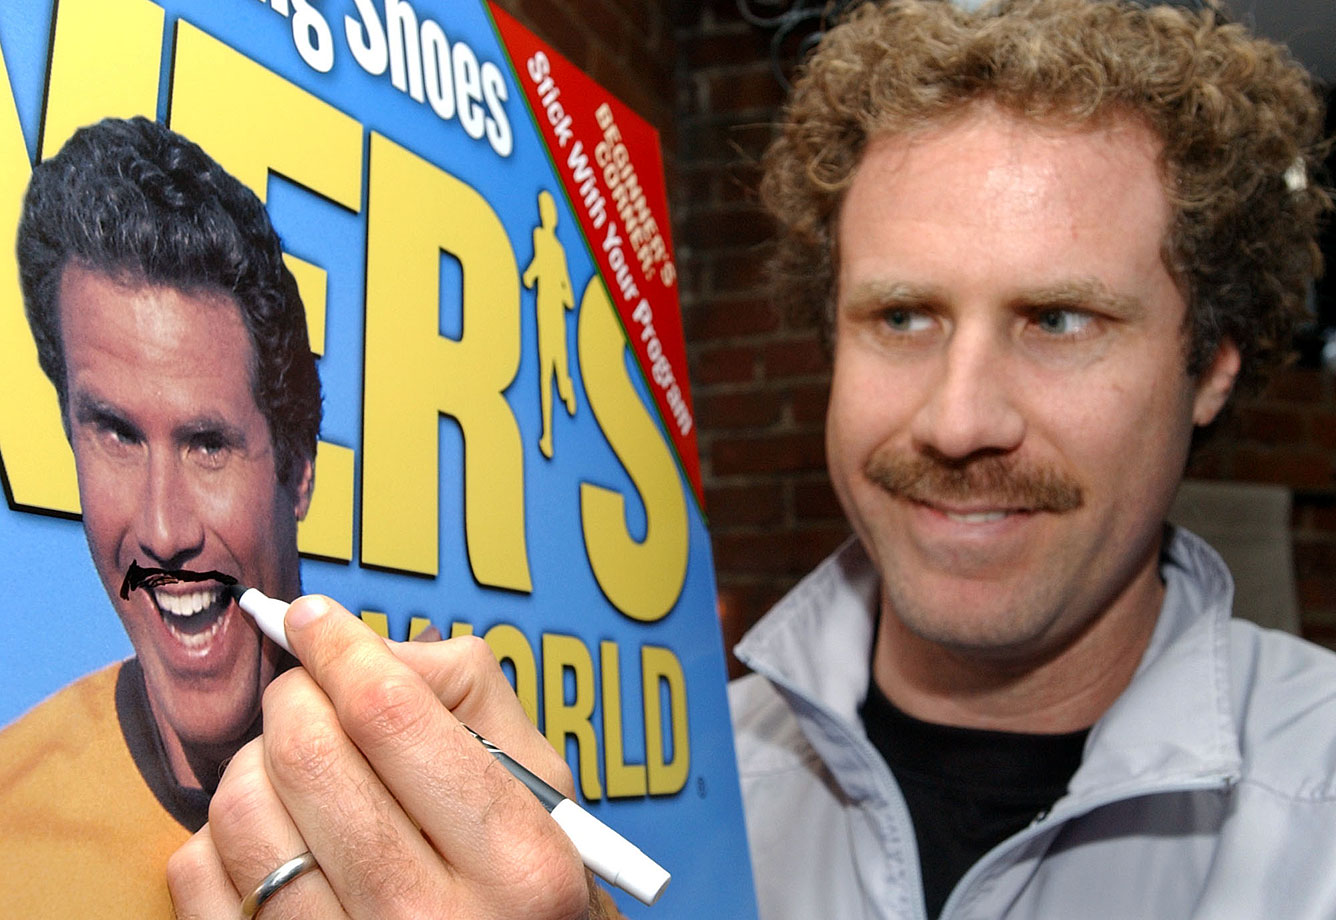 Will Ferrell makes an update to a blow-up of a recent Runner's World magazine cover featuring Ferrell during a news conference on April 20, 2003 in Boston.